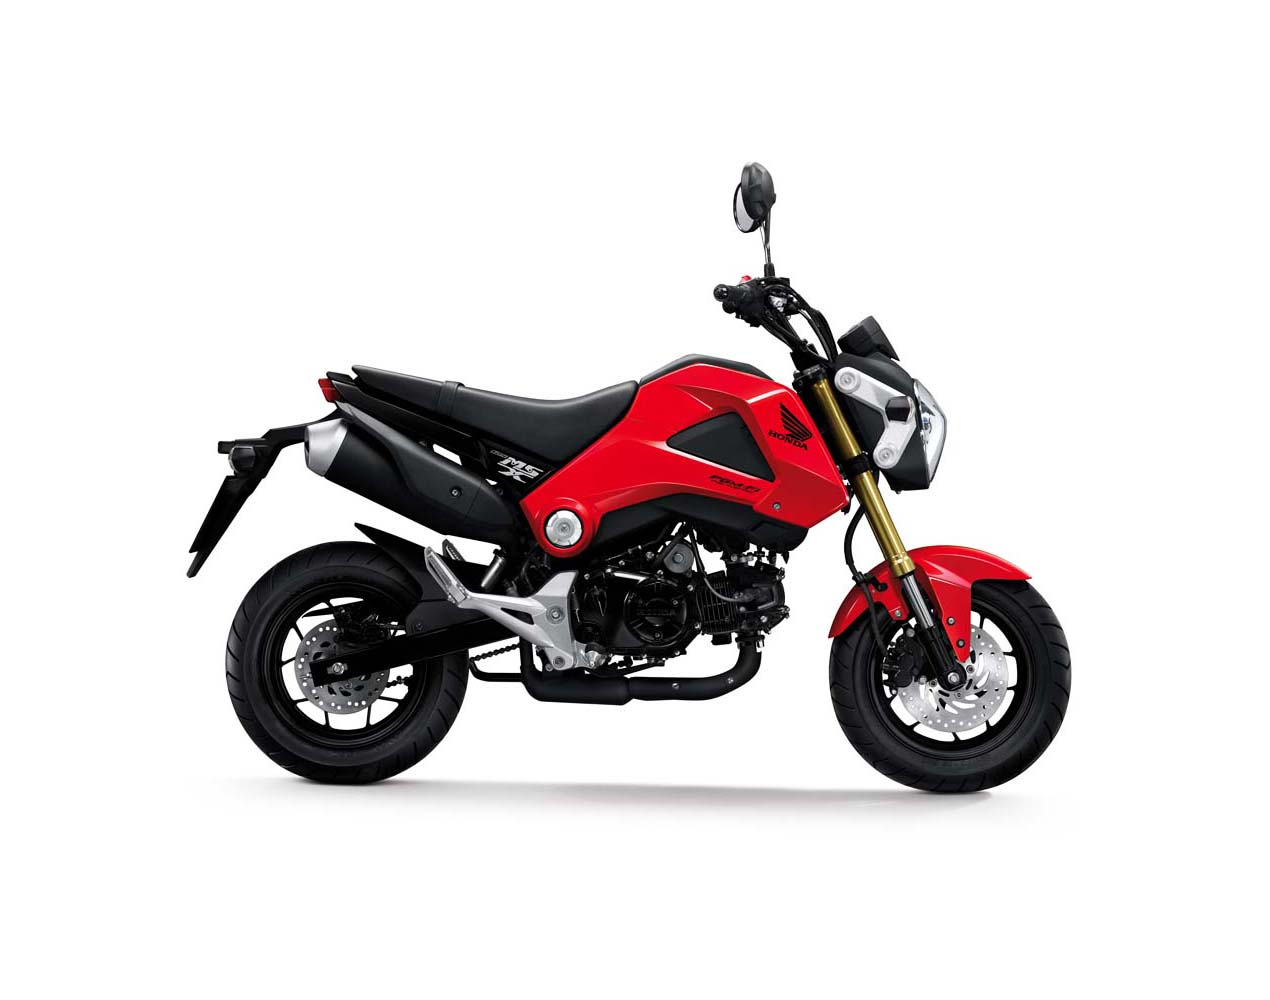 2014 Honda Grom Perfect Small City Motorcycle on bmw 3 series engine